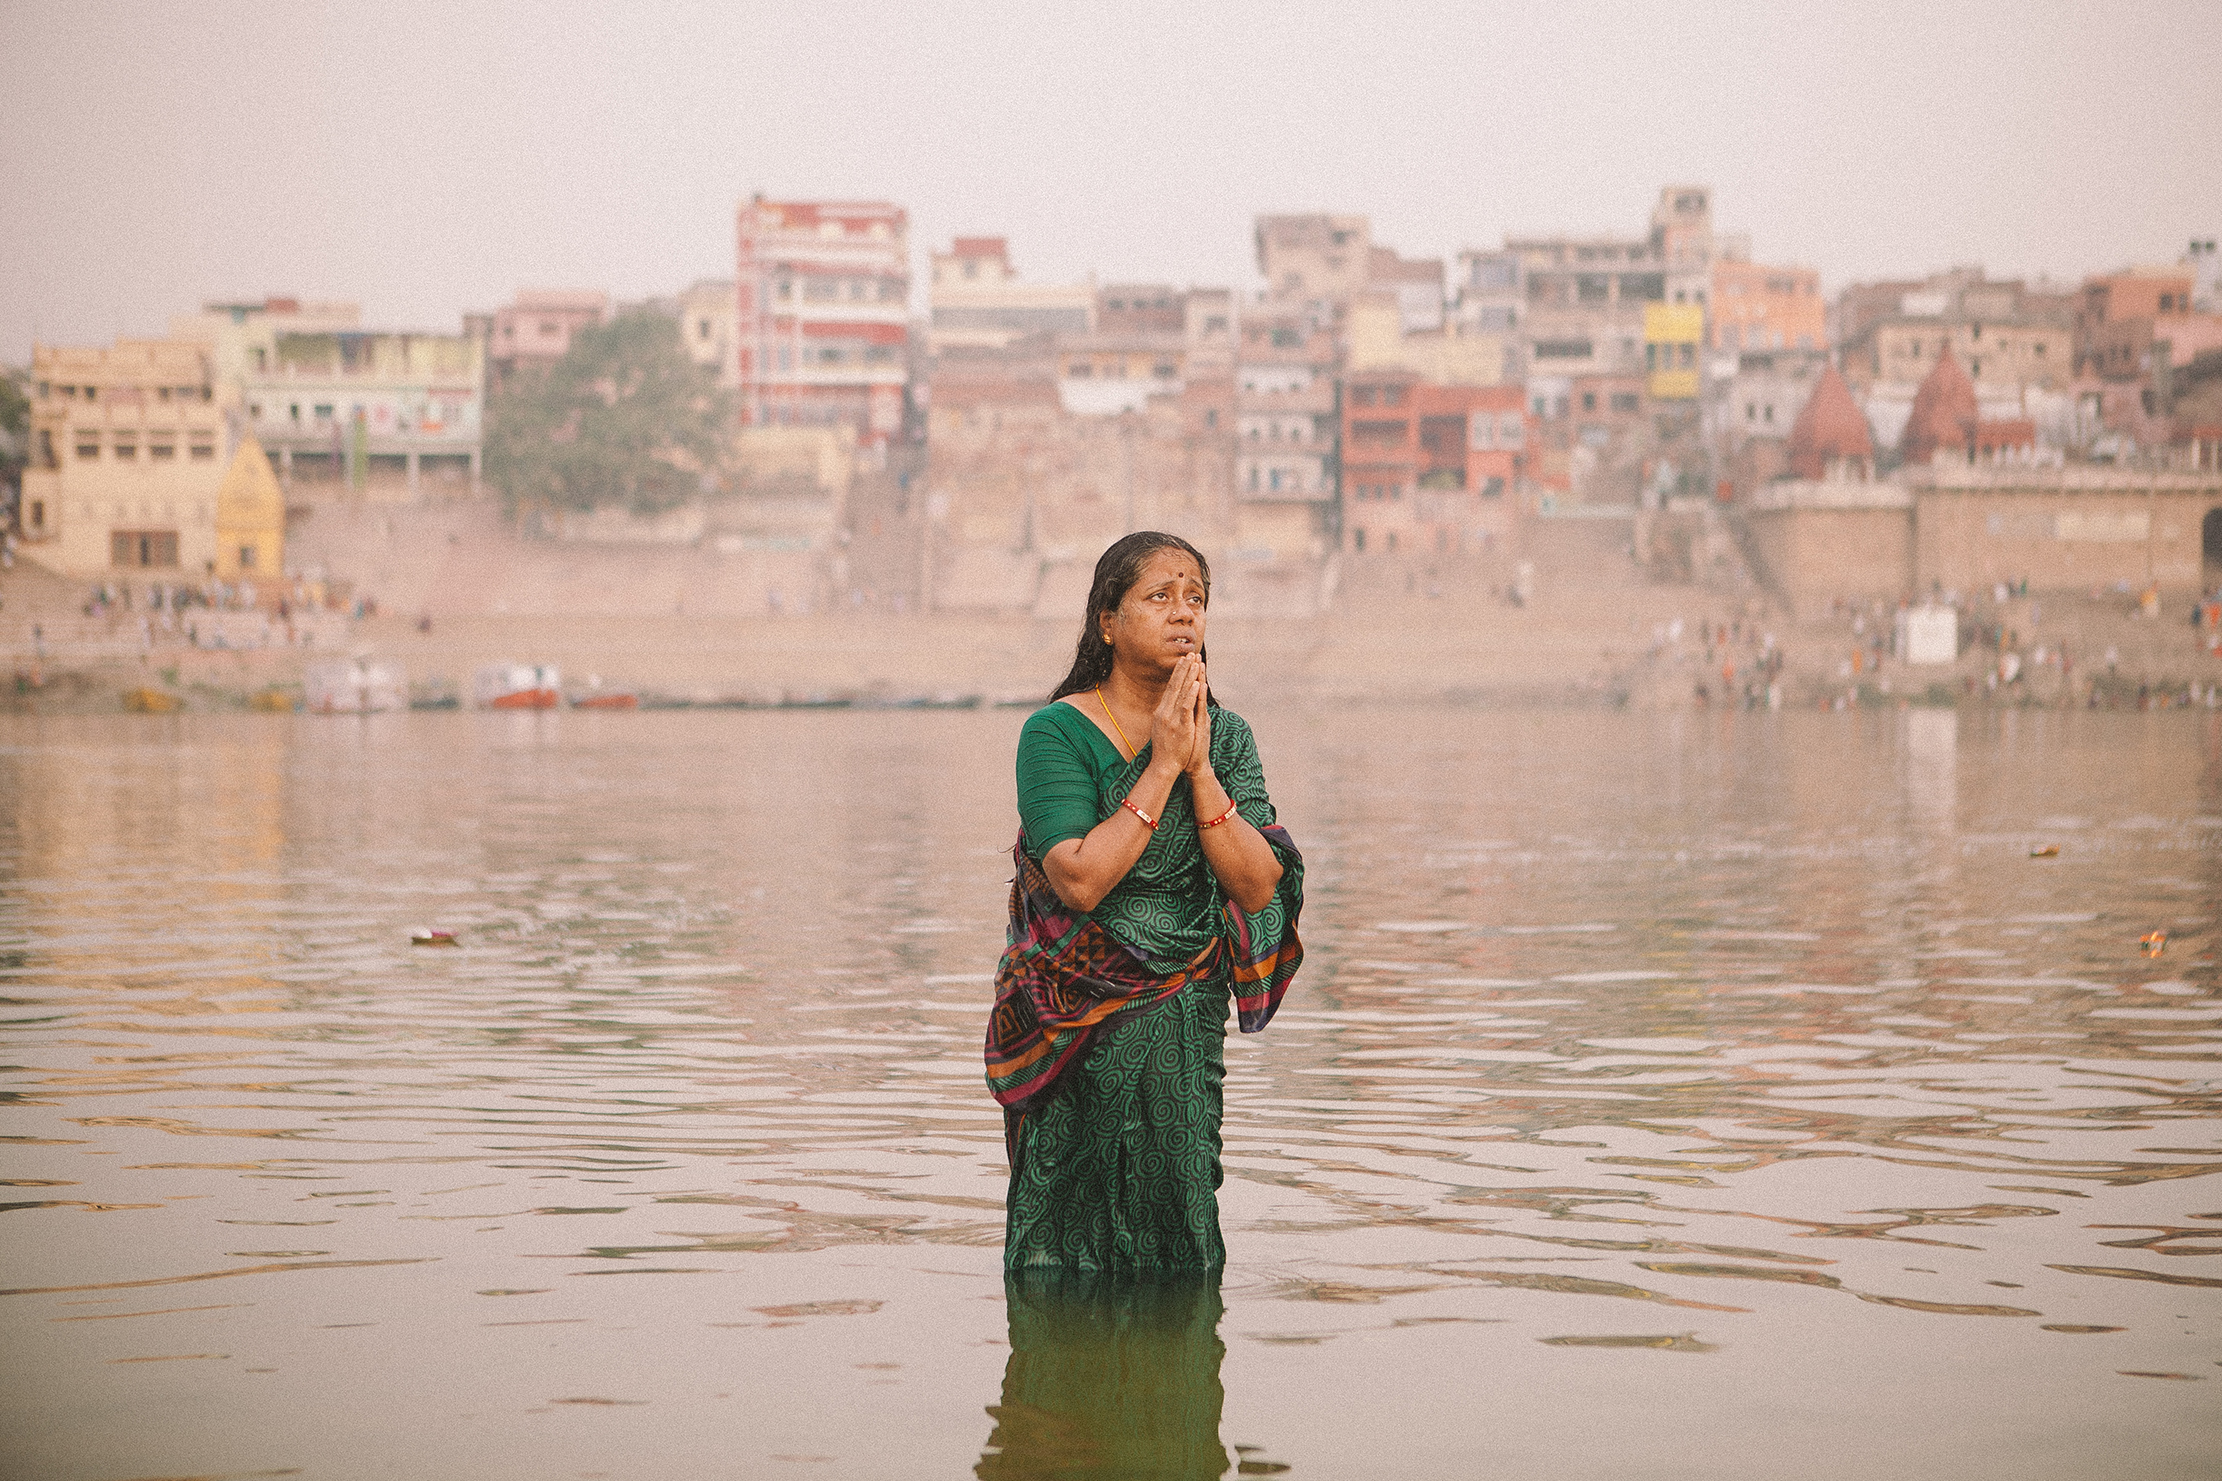 A devotee starts her day by bathing and intimately praying in the Ganga river, Hindu religion believes that the river possesses religious power that washes away impurities and brings them closer to their ancestors and to god.  Varanasi, India 2014